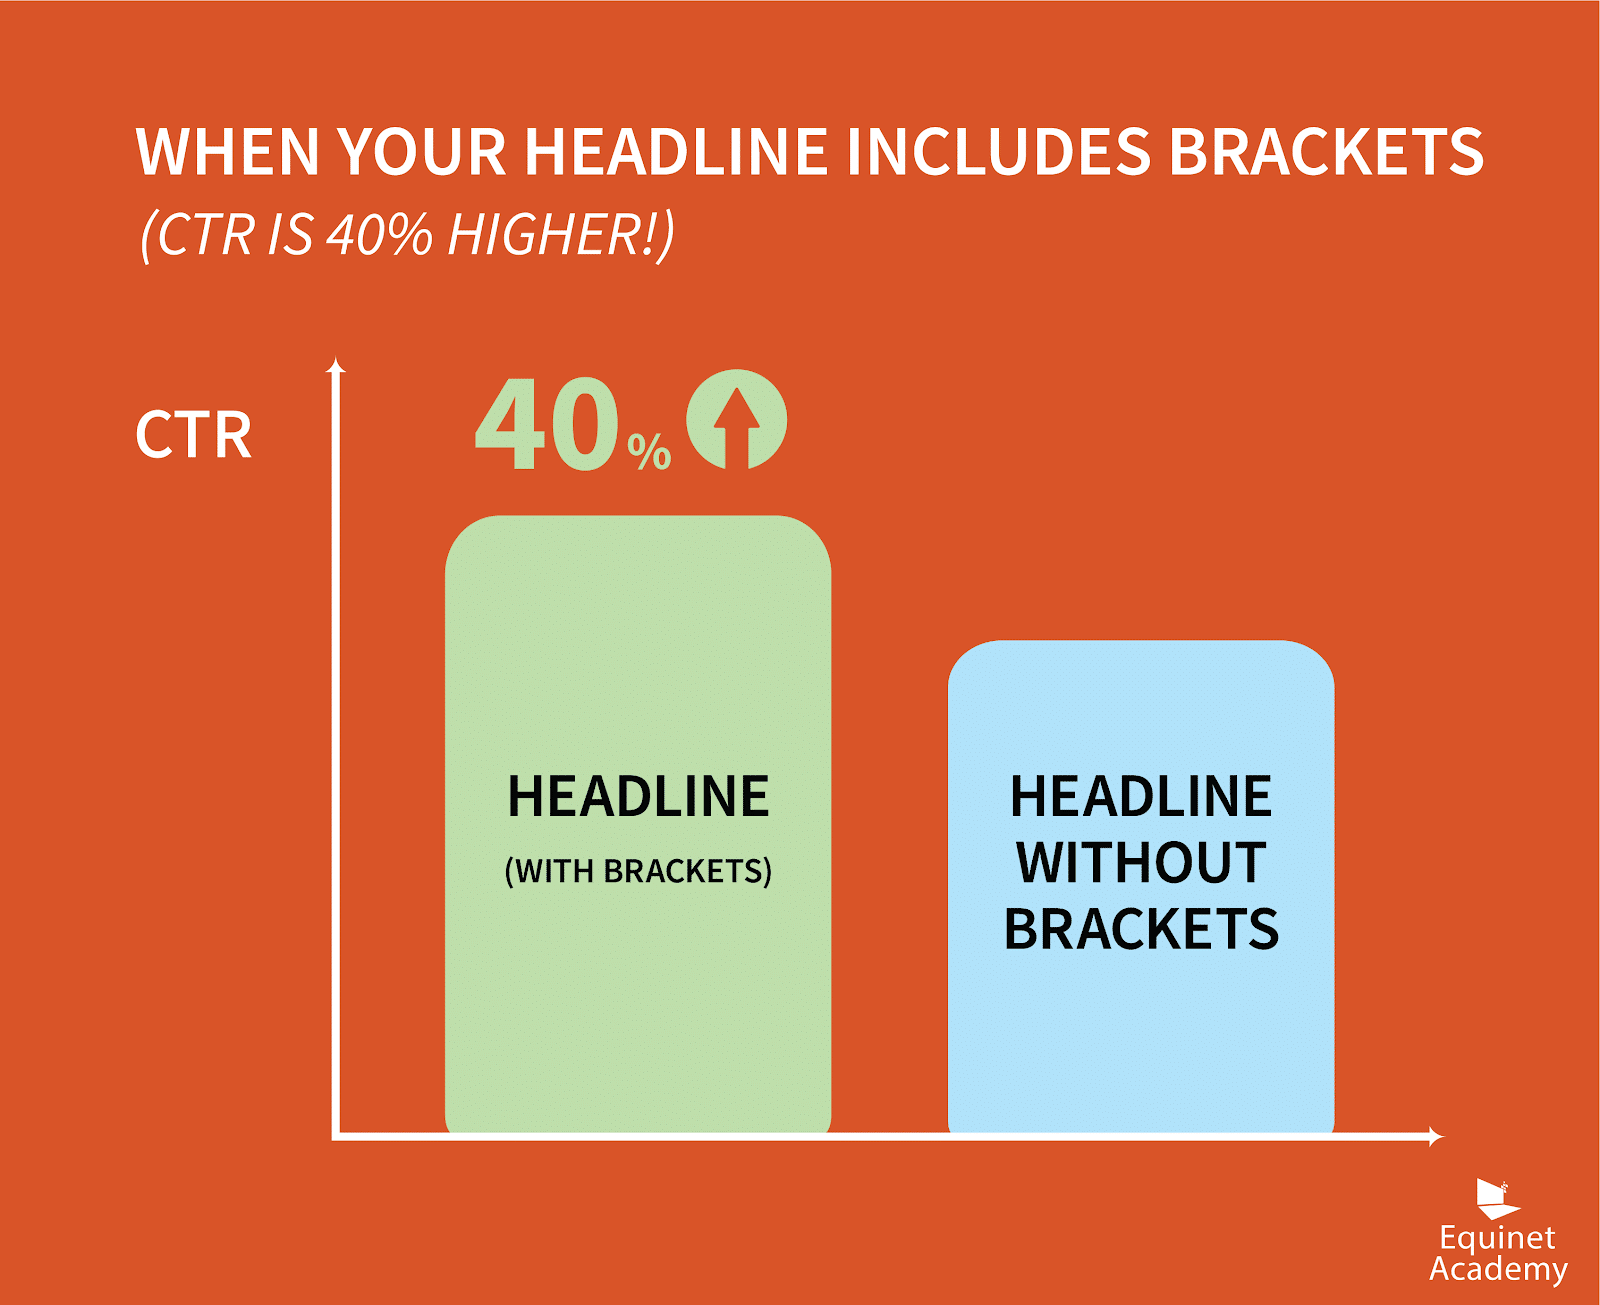 statistic-of-headlines-with-brackets